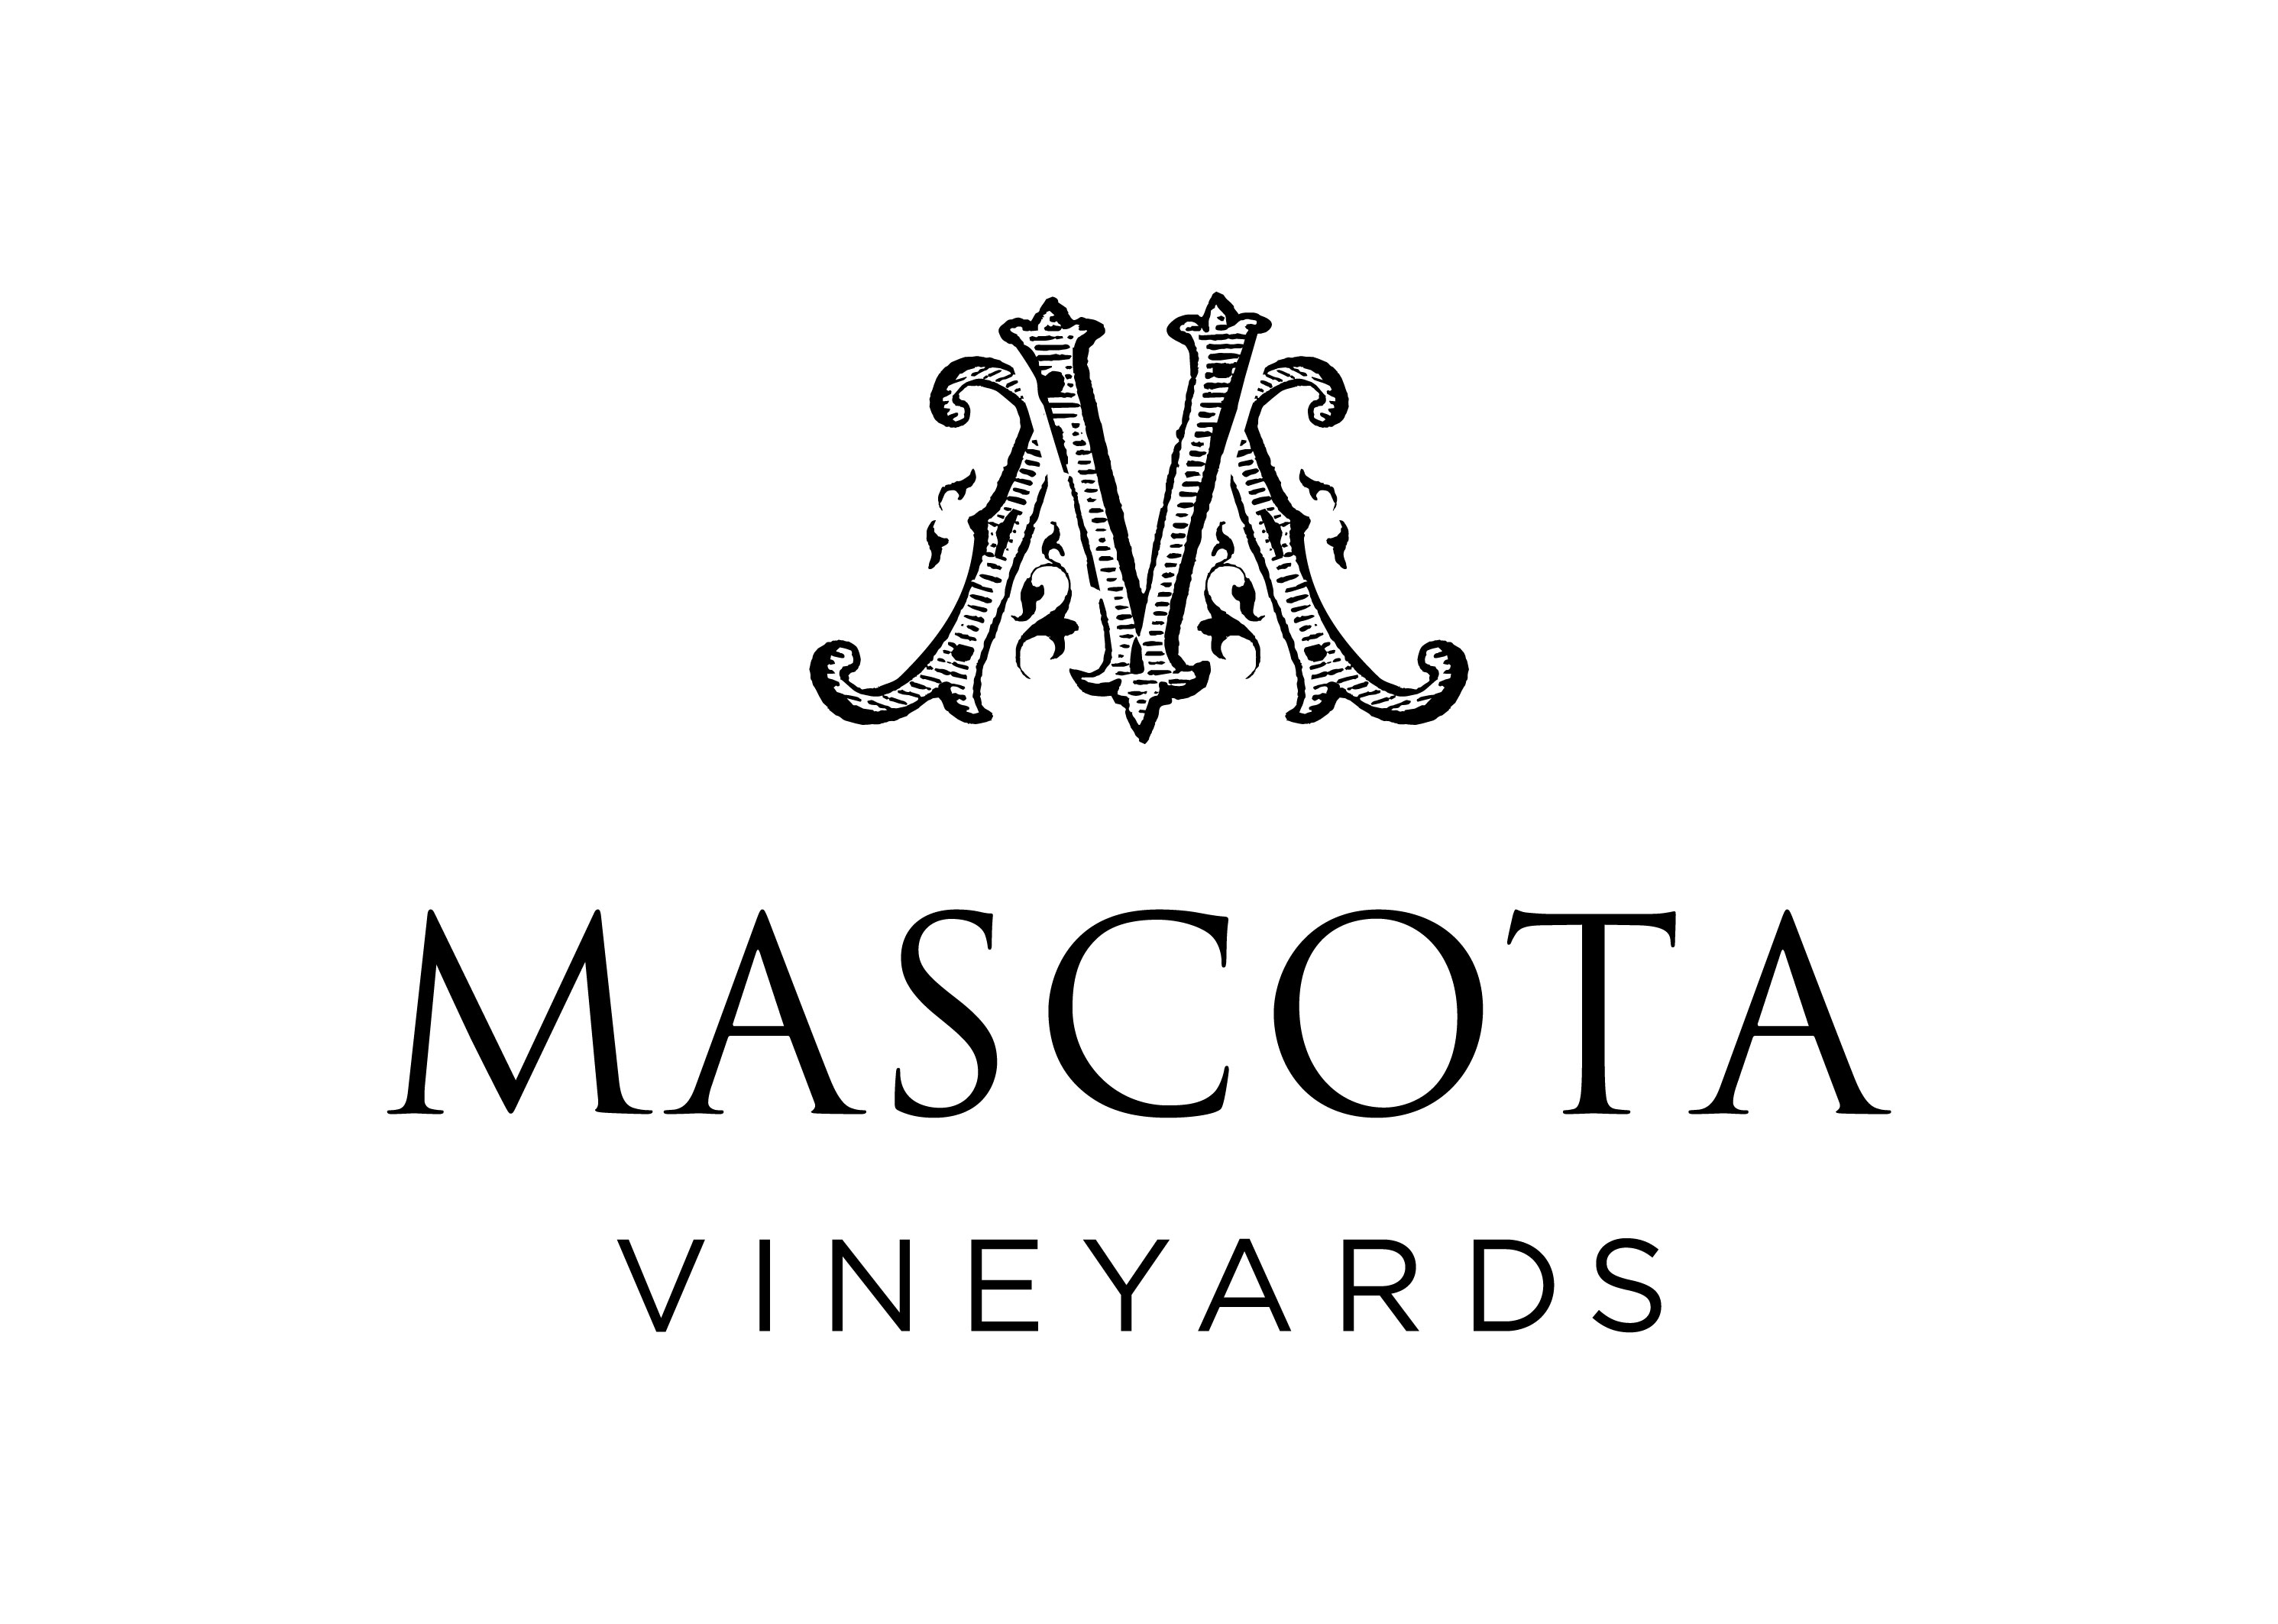 Mascota Vineyards